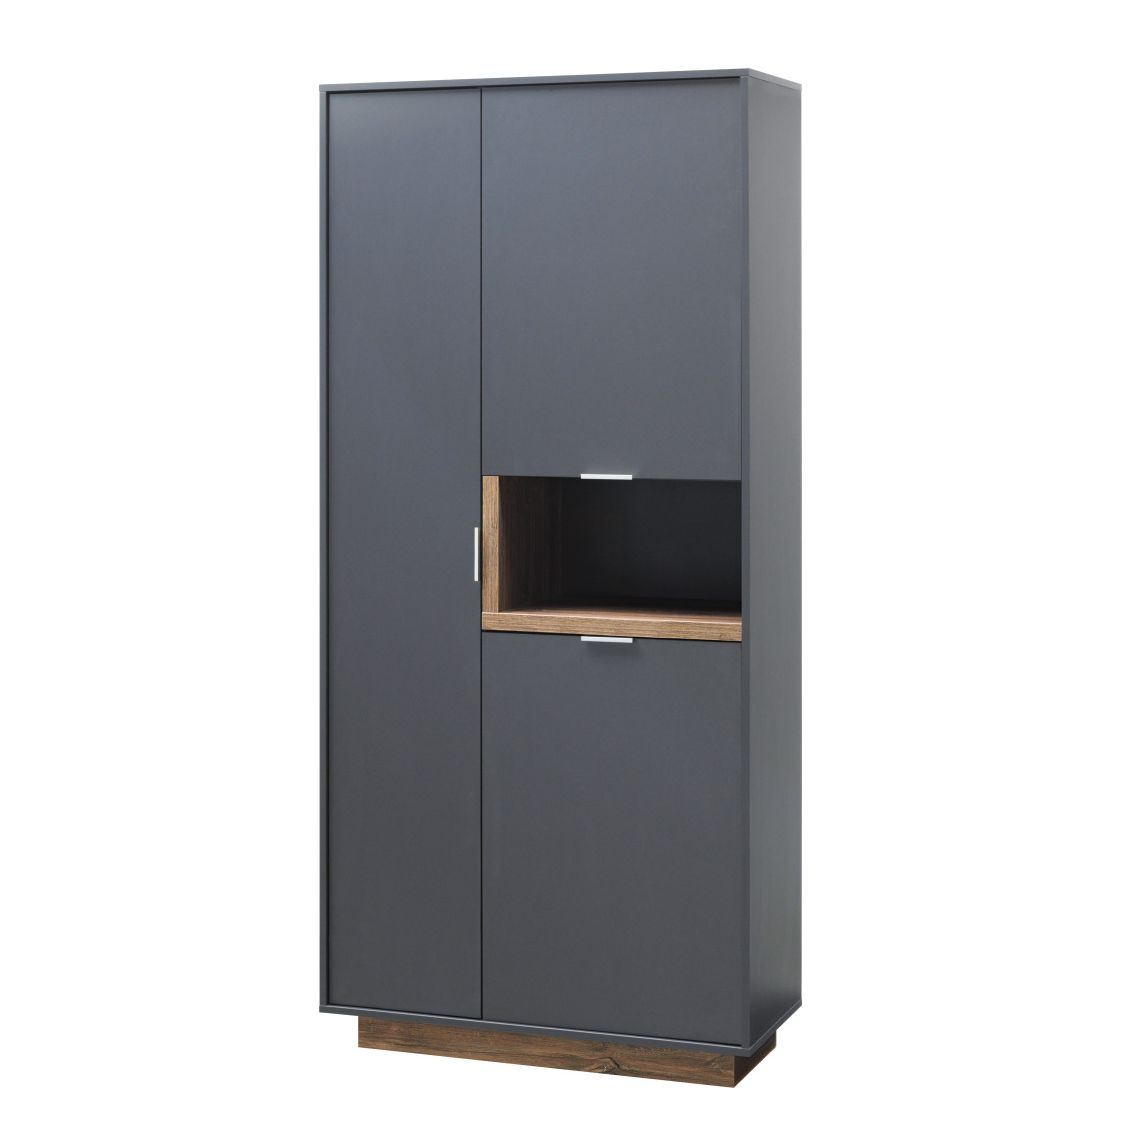 Armoire My Ell - Graphite / Imitation chêne de Stirling, Cs Schmal